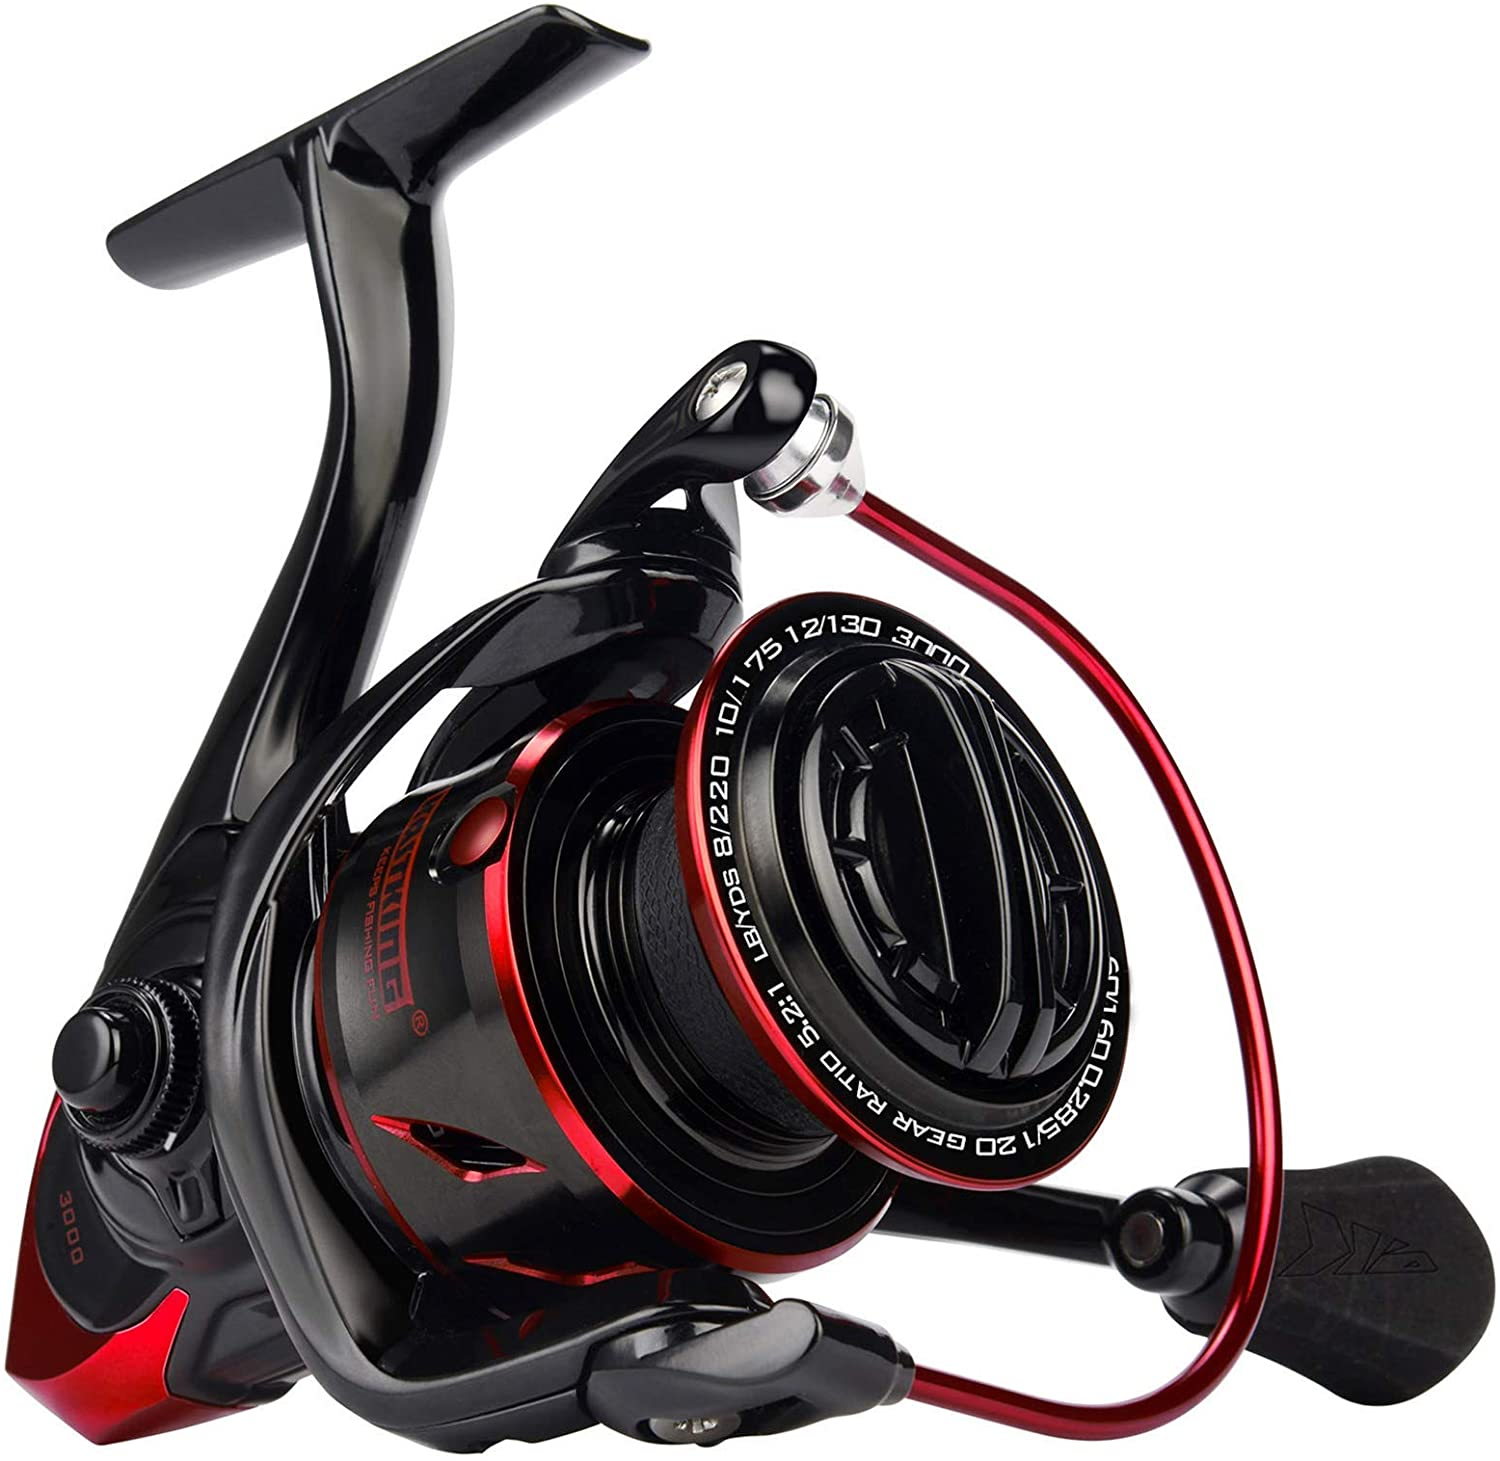 Kastking Sharky Iii New Spinning Reel